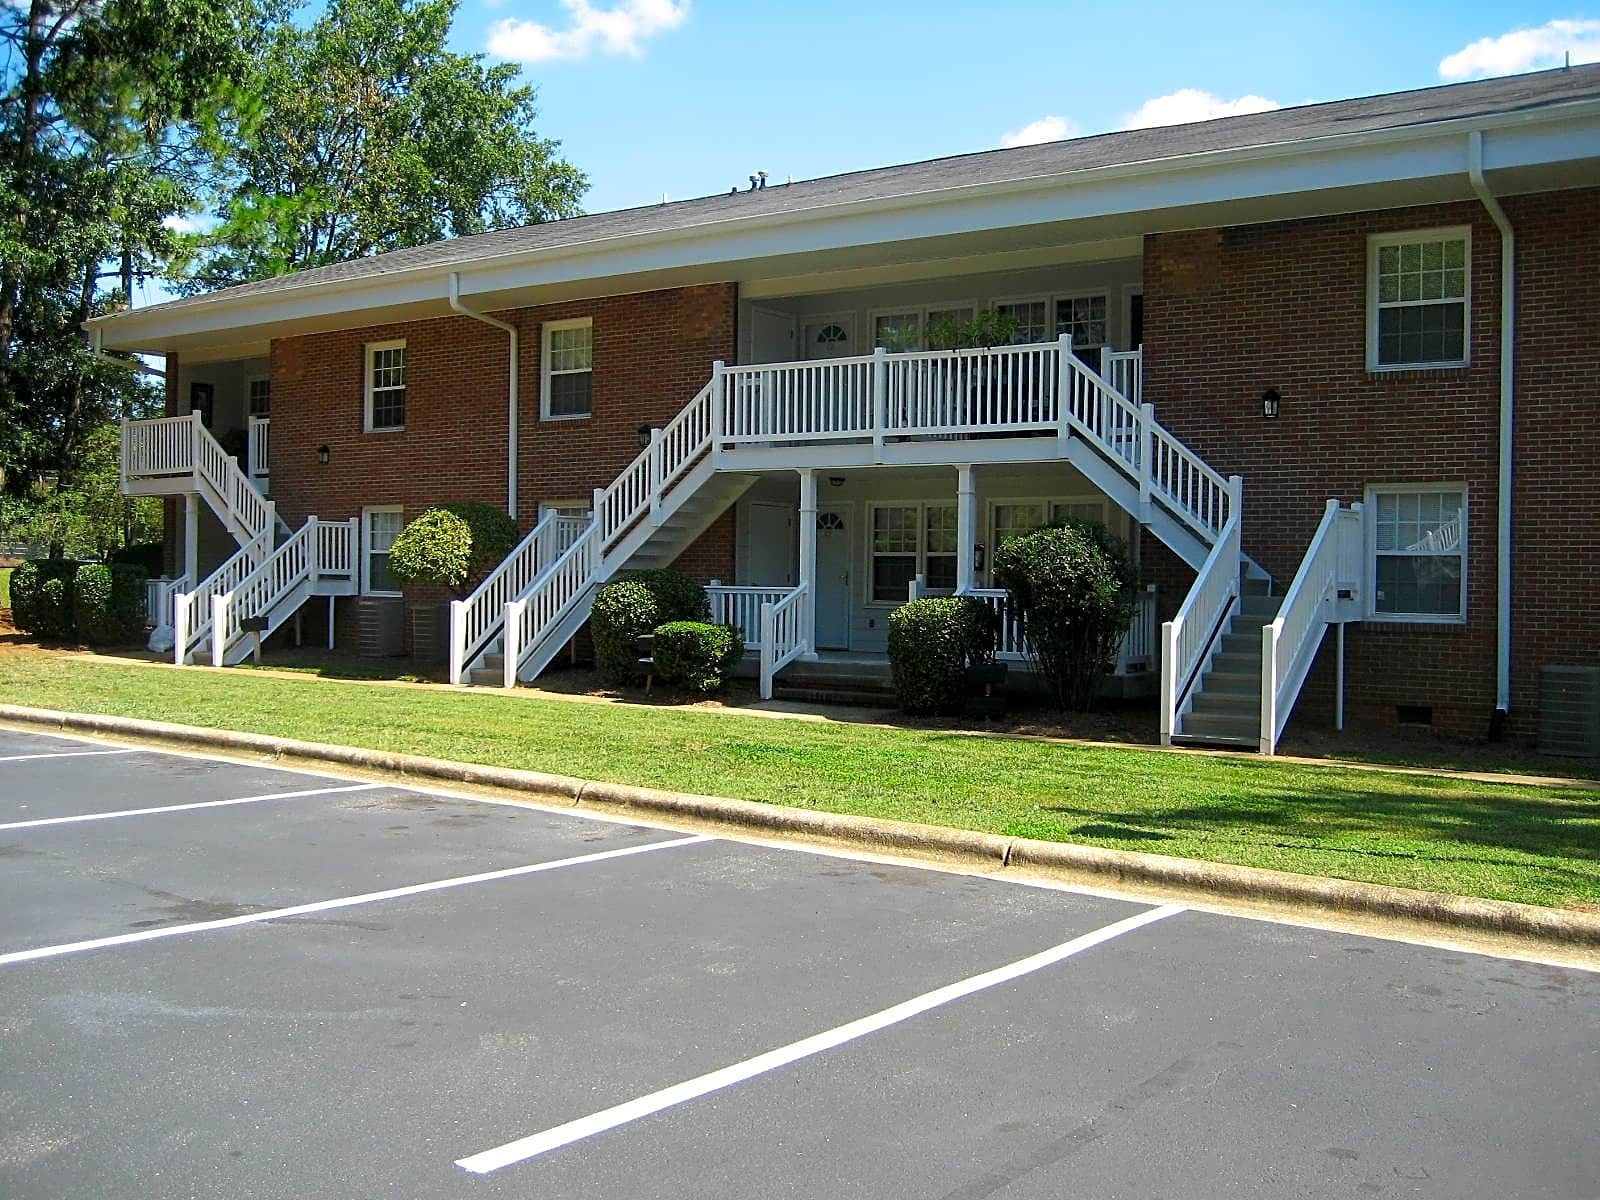 Apartments Near Shaw Shamrock Apartments for Shaw University Students in Raleigh, NC